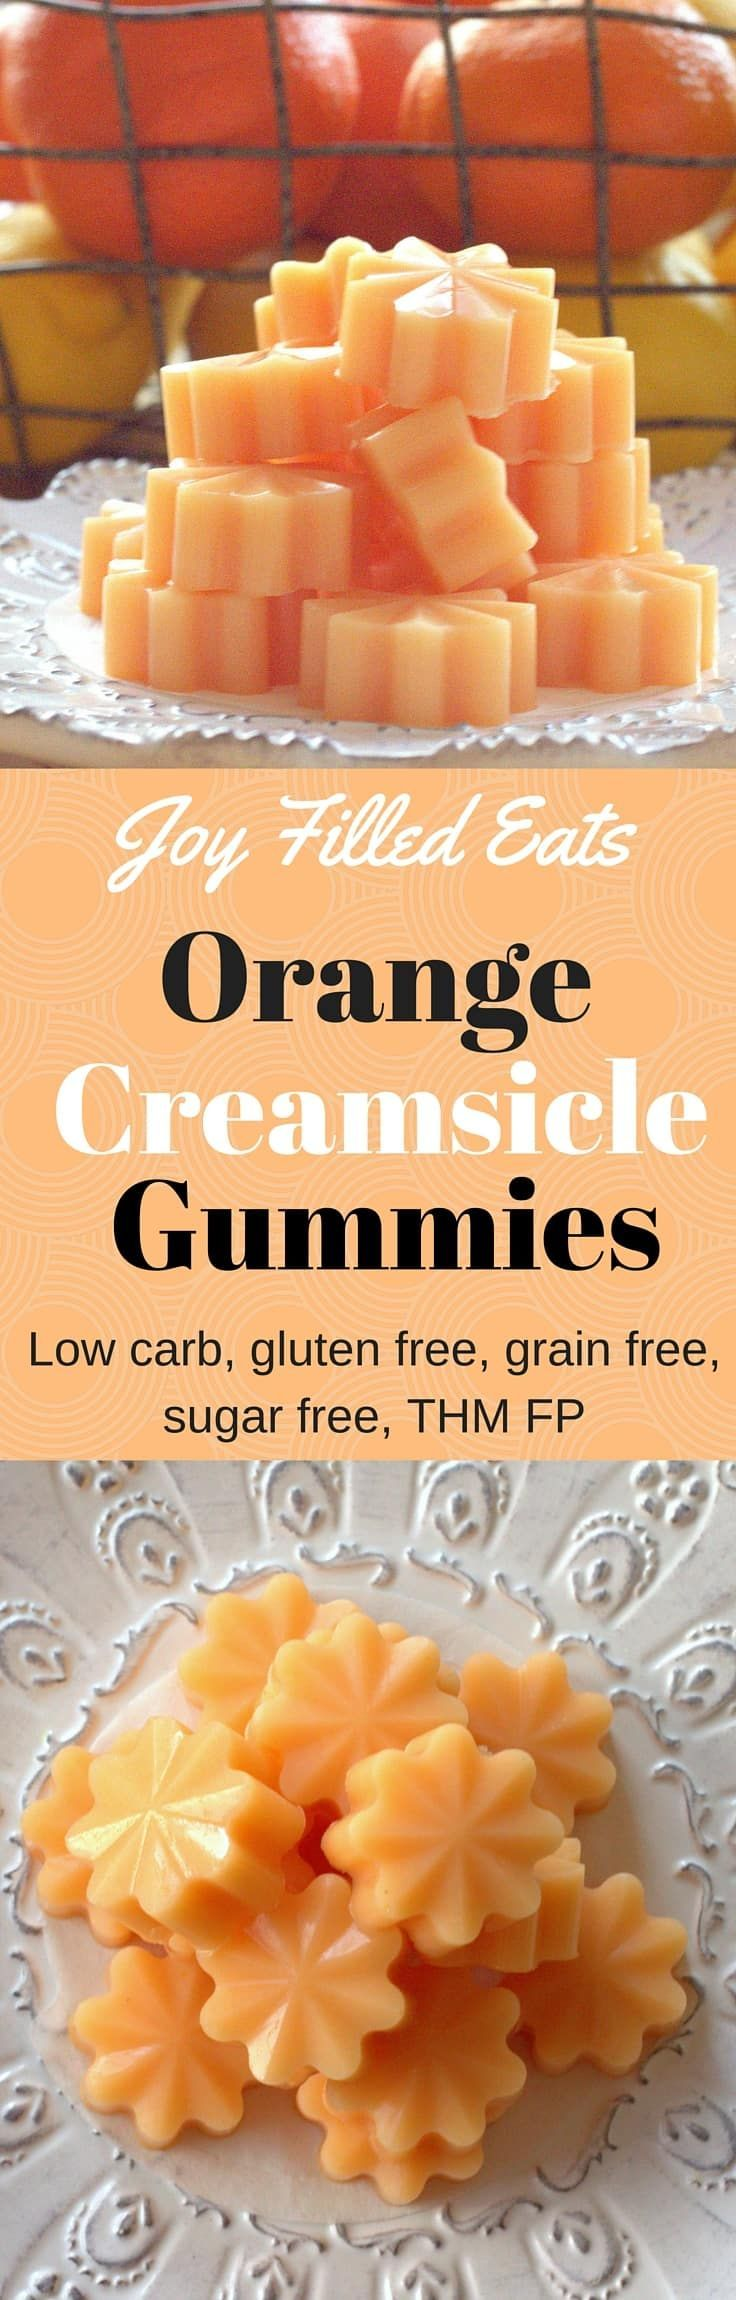 Orange Creamsicle Gummies remind me of being a kid on a summer day. These gummies capture those flavors and are low carb, keto, gluten free, sugar free, & a THM FP.